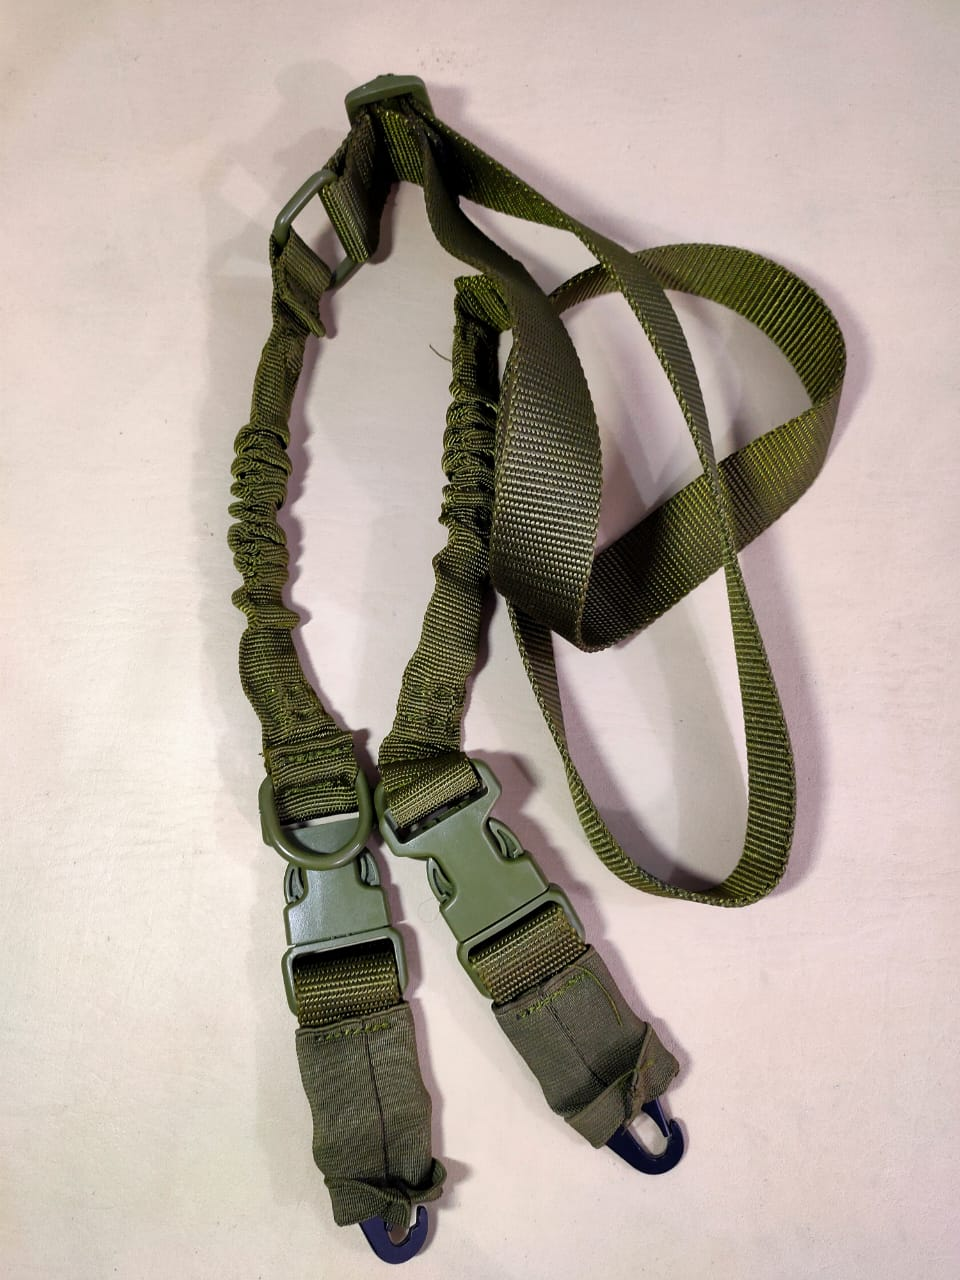 Two Point Imported sling with Metal hooks For AKM M4 Ar15 Army Green Color